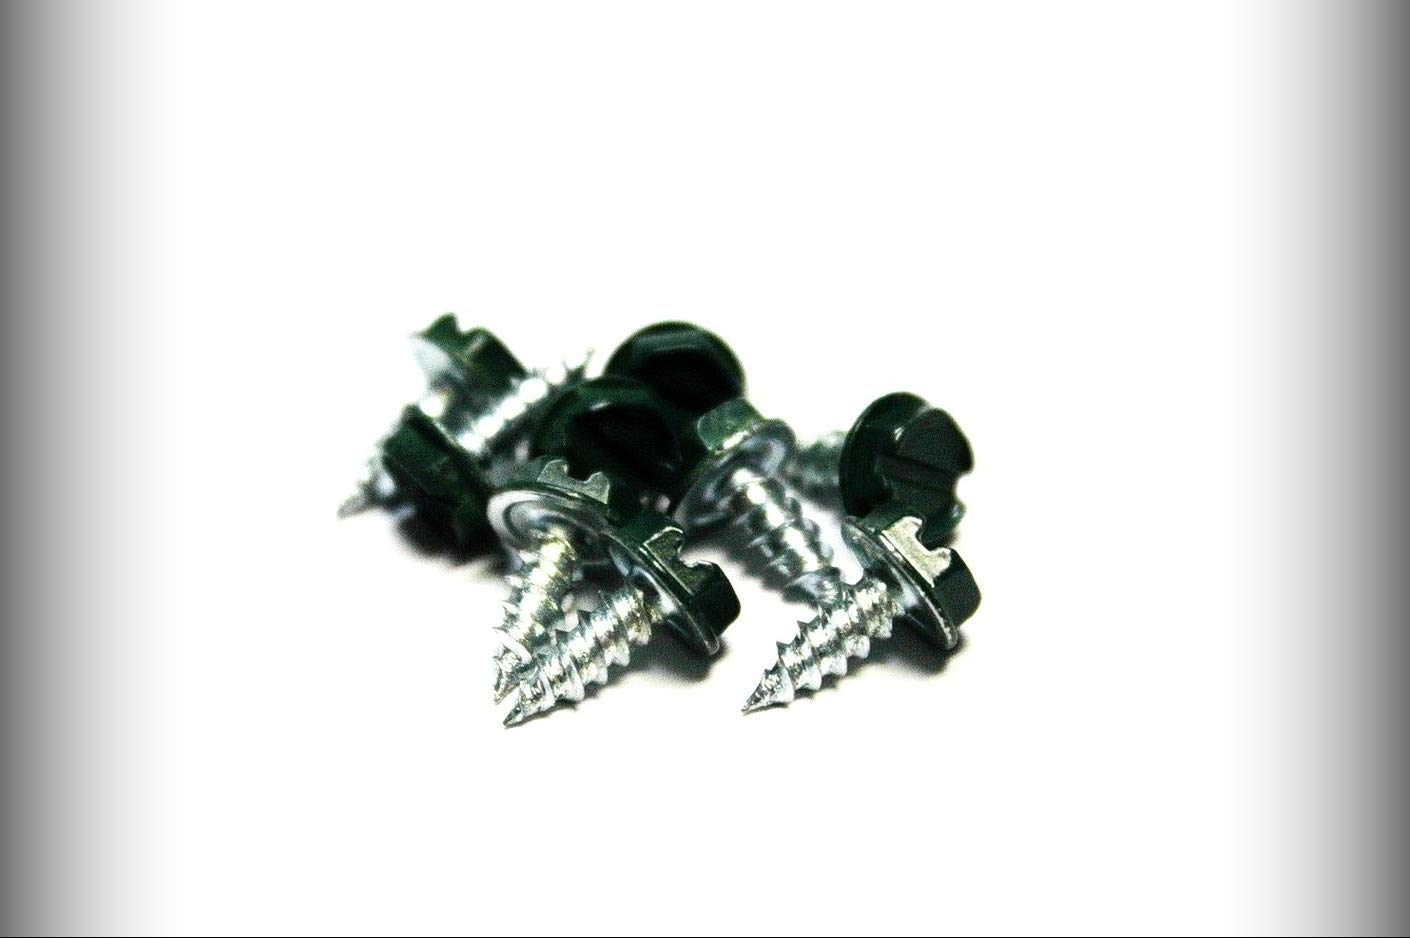 Set #TR-1124F Warranity by Pr-Mch pcs 6 x 3//8 Slotted Hex Head Sheet Metal Screws Evergreen New Package of 500